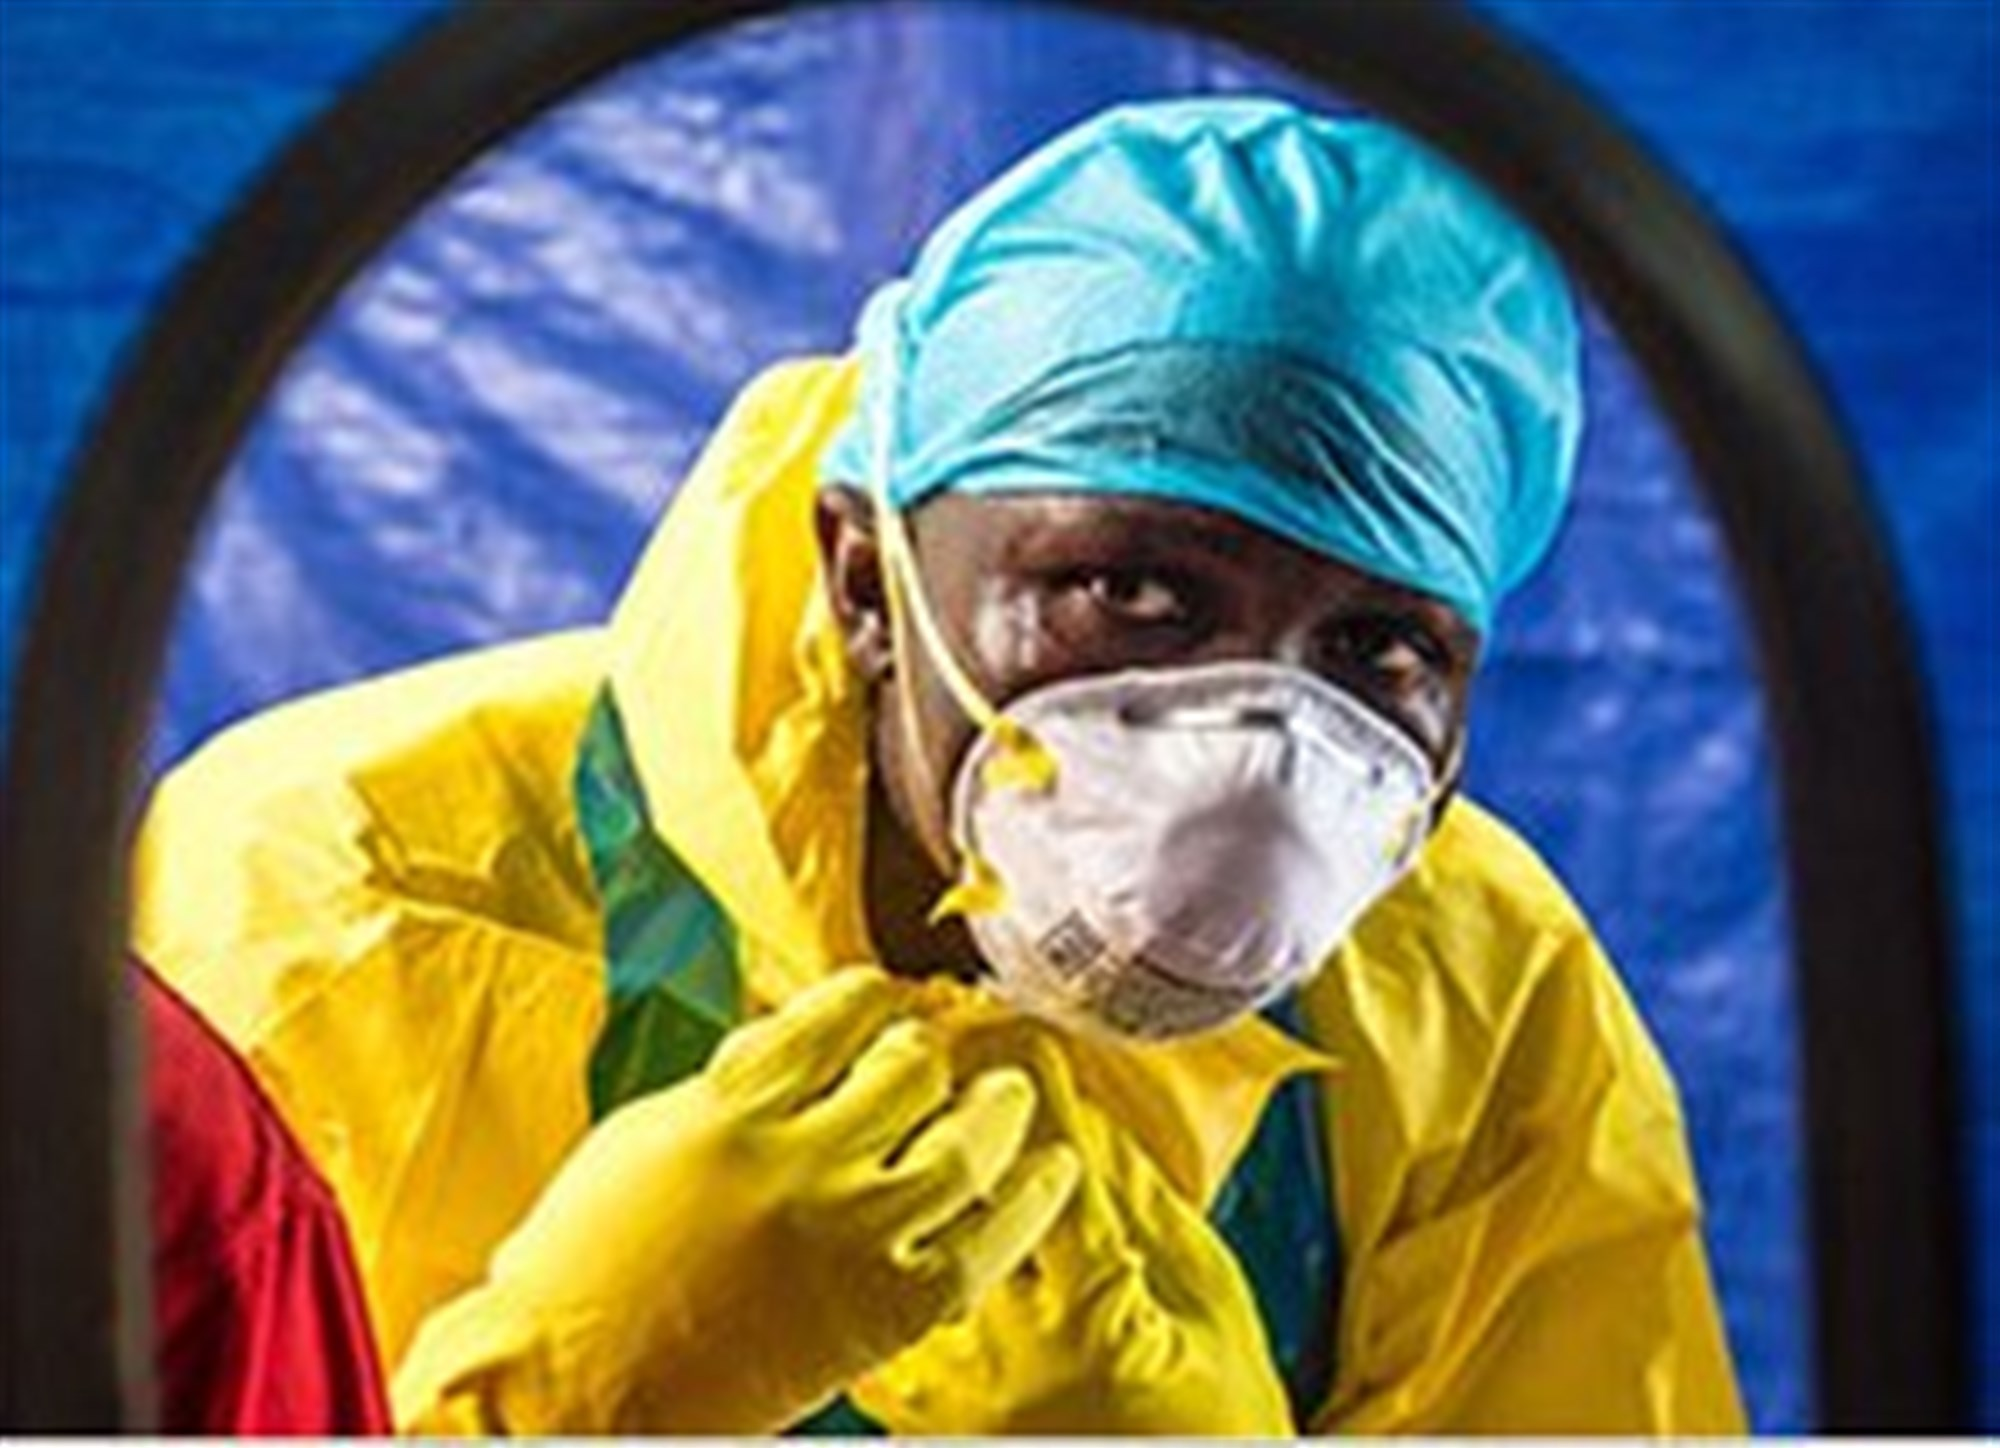 A health worker dons protective gear before entering an Ebola treatment center in Sierra Leone.  Read more: http://iipdigital.usembassy.gov/st/english/article/2015/01/20150120313054.html#ixzz3PRn4N3W9